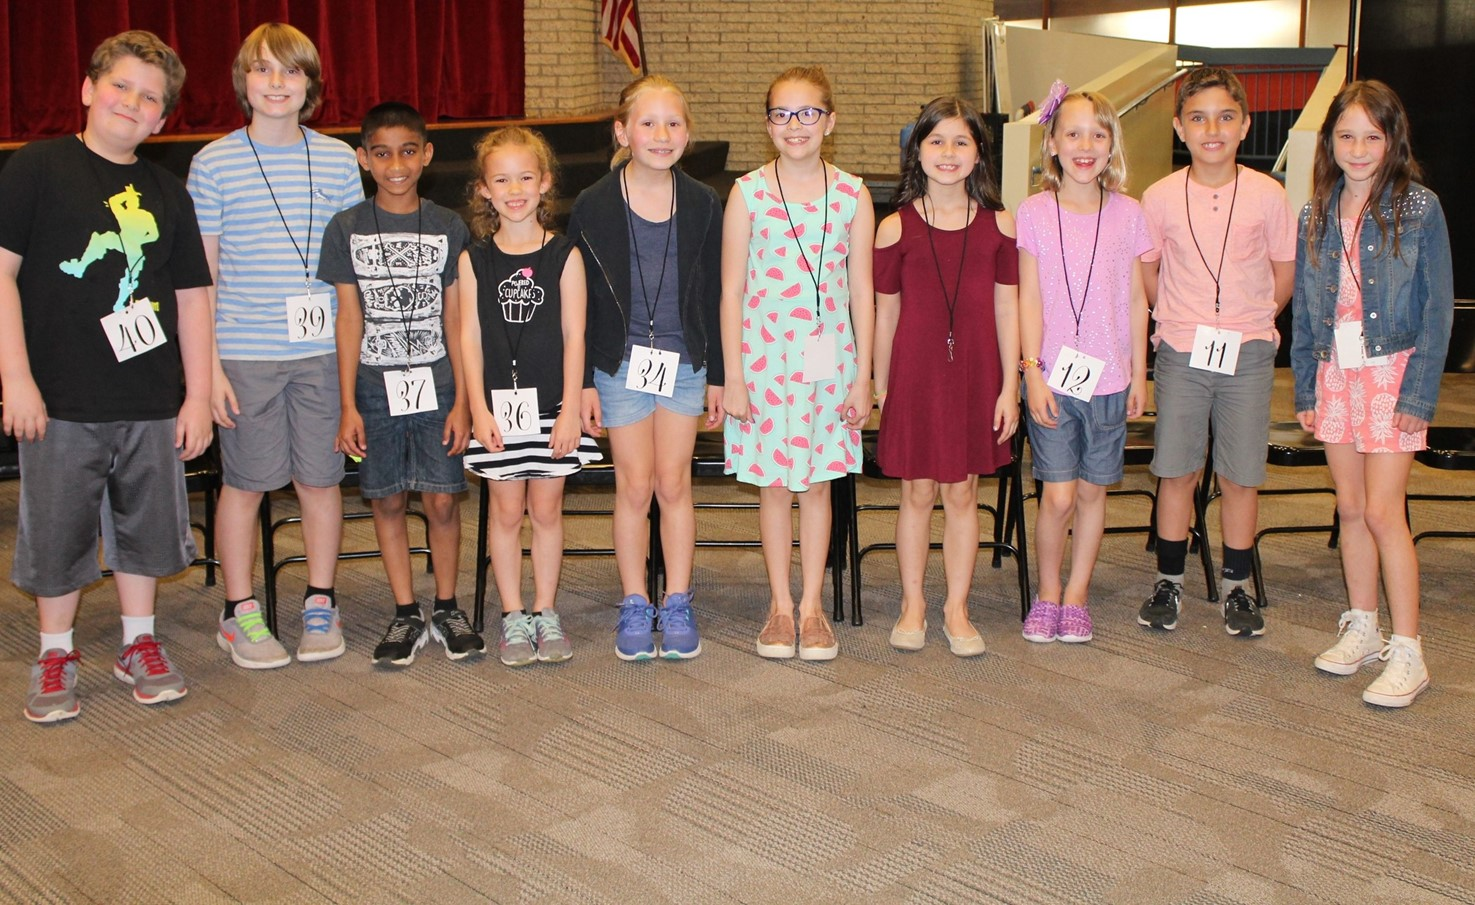 The Top 10 Spellers in the Rotary Third Grade Spelling Bee